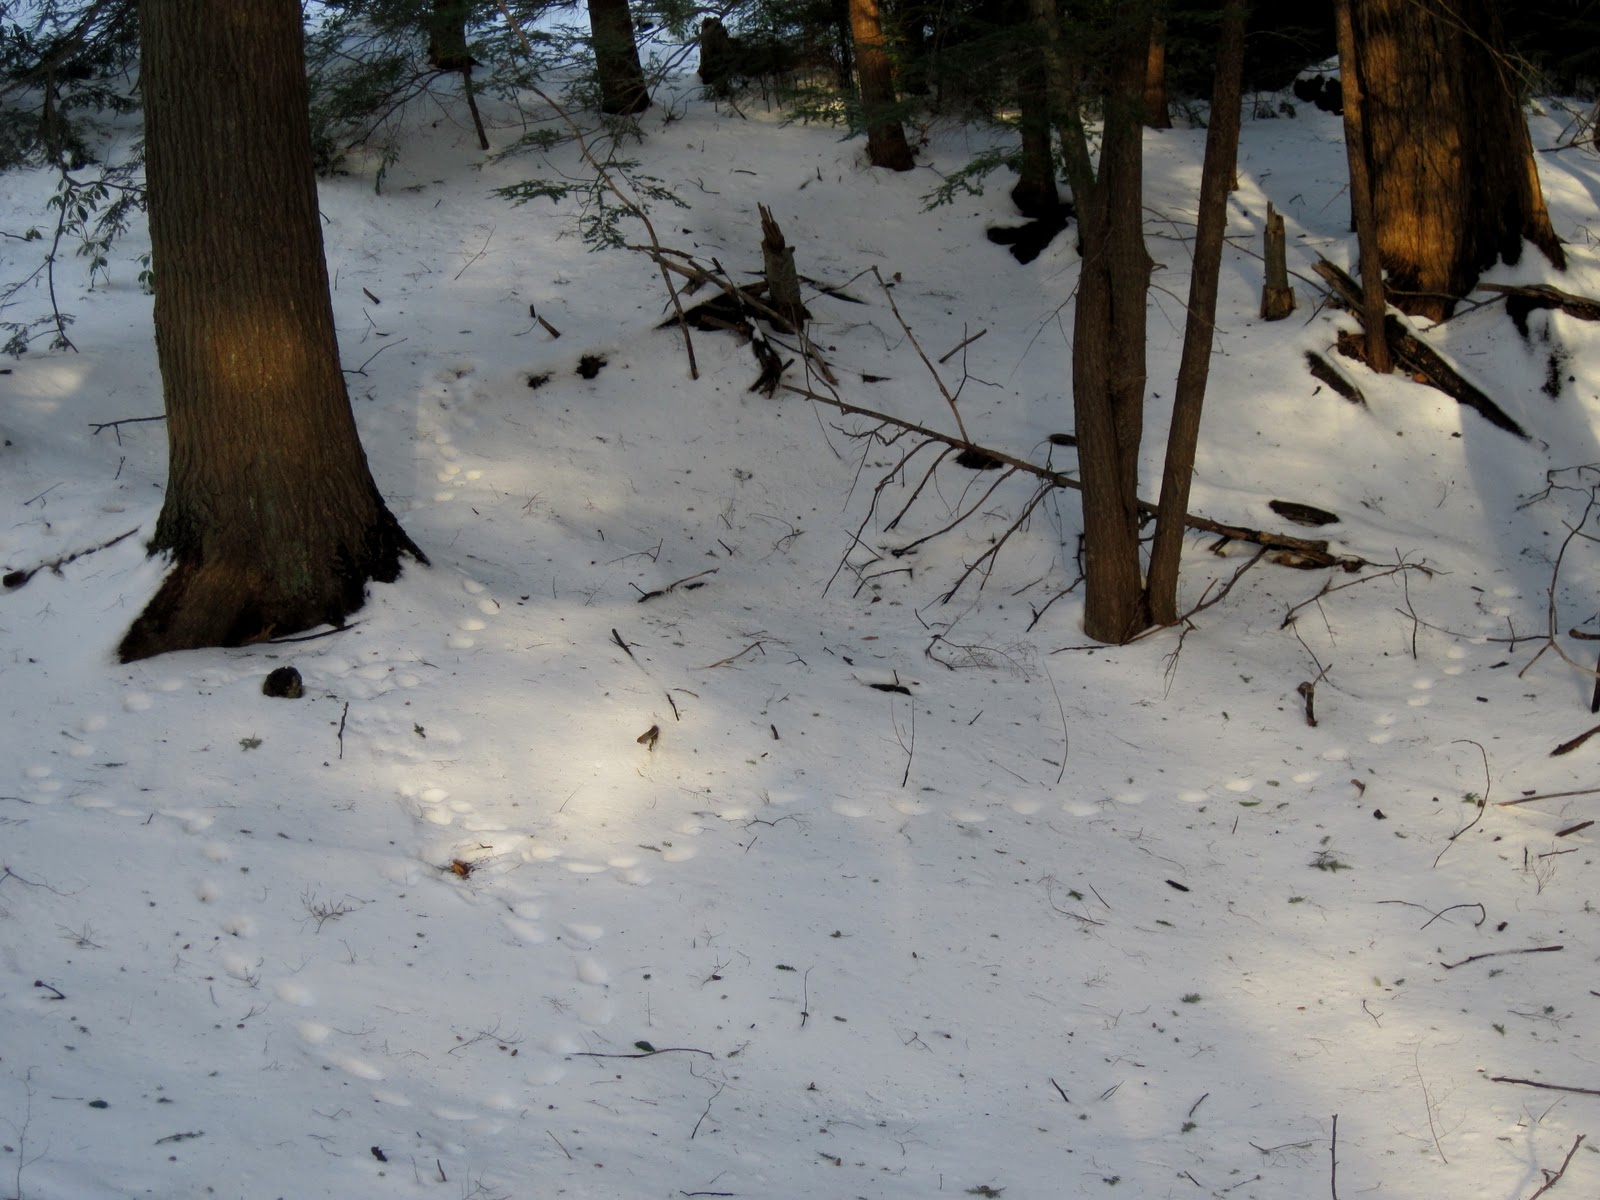 Fisher Cat Tracks - Bing images